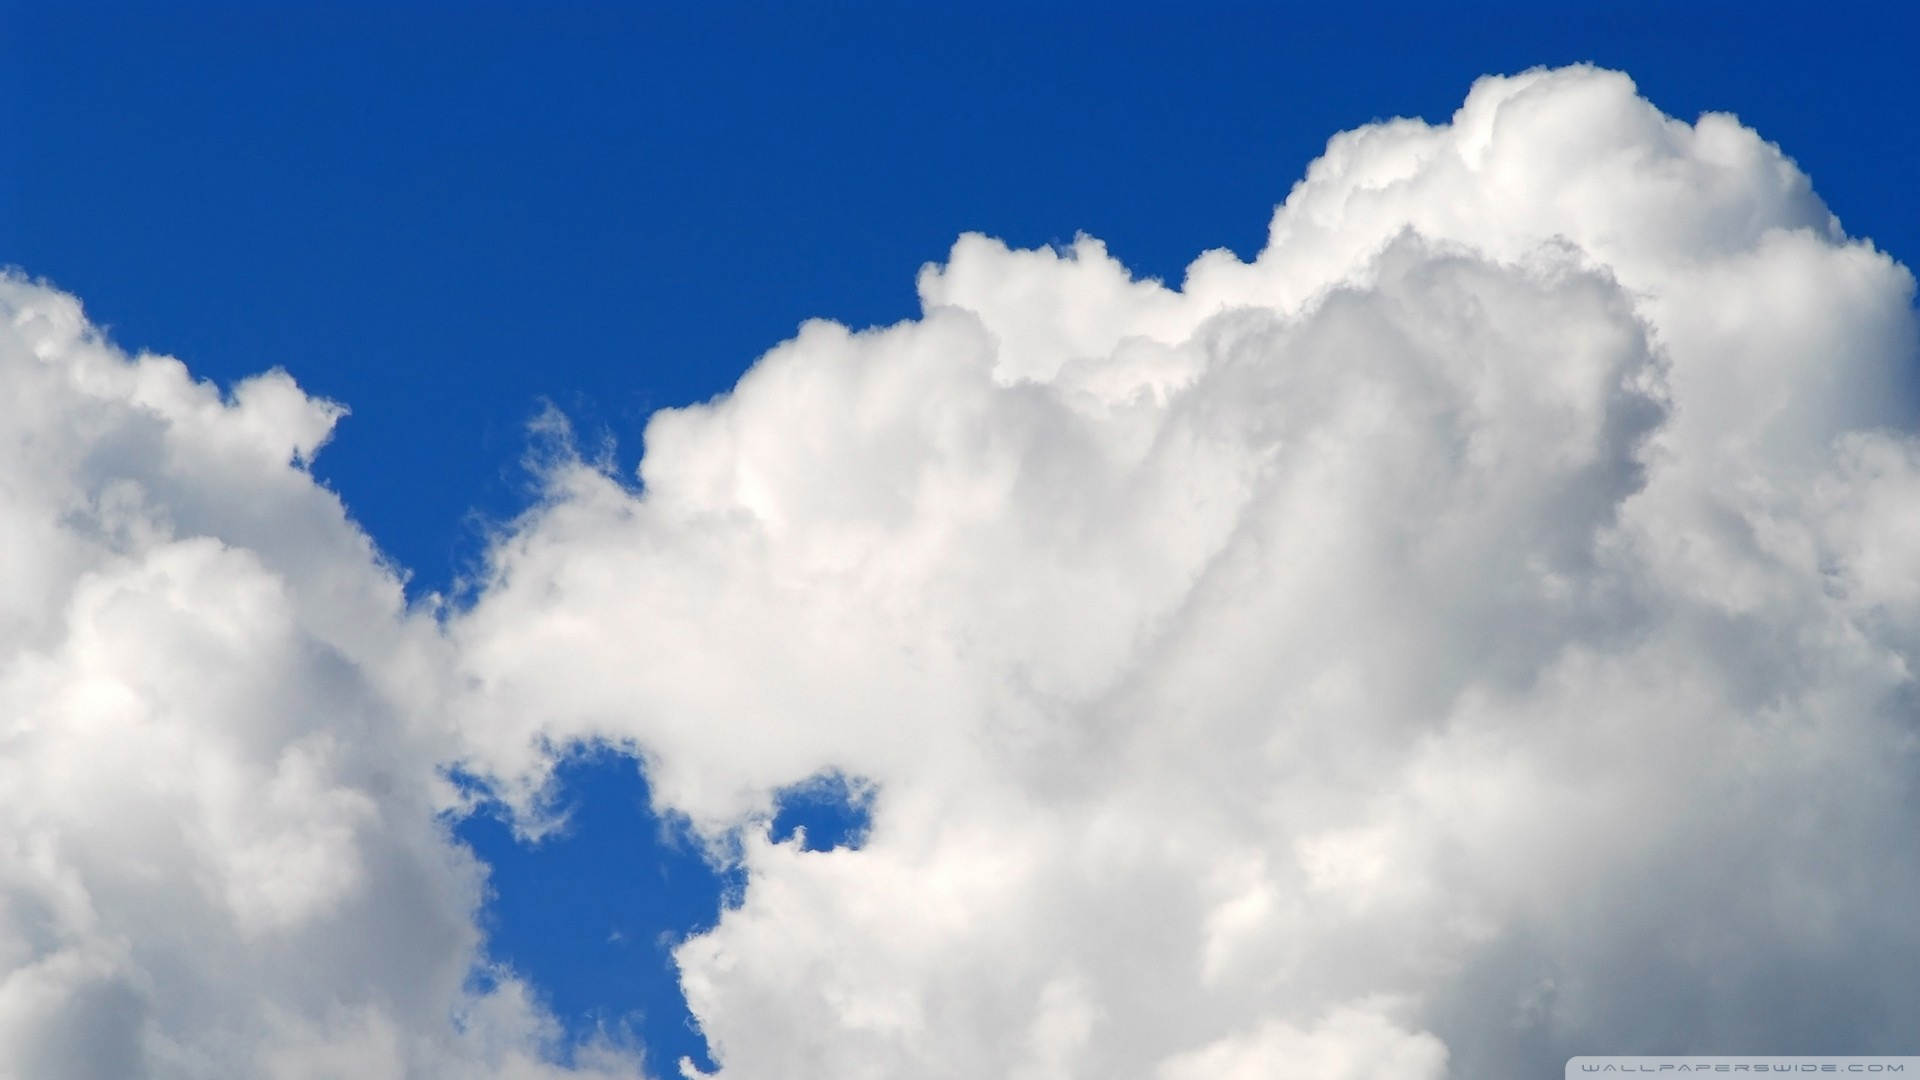 Fluffy Cloud Wallpaper